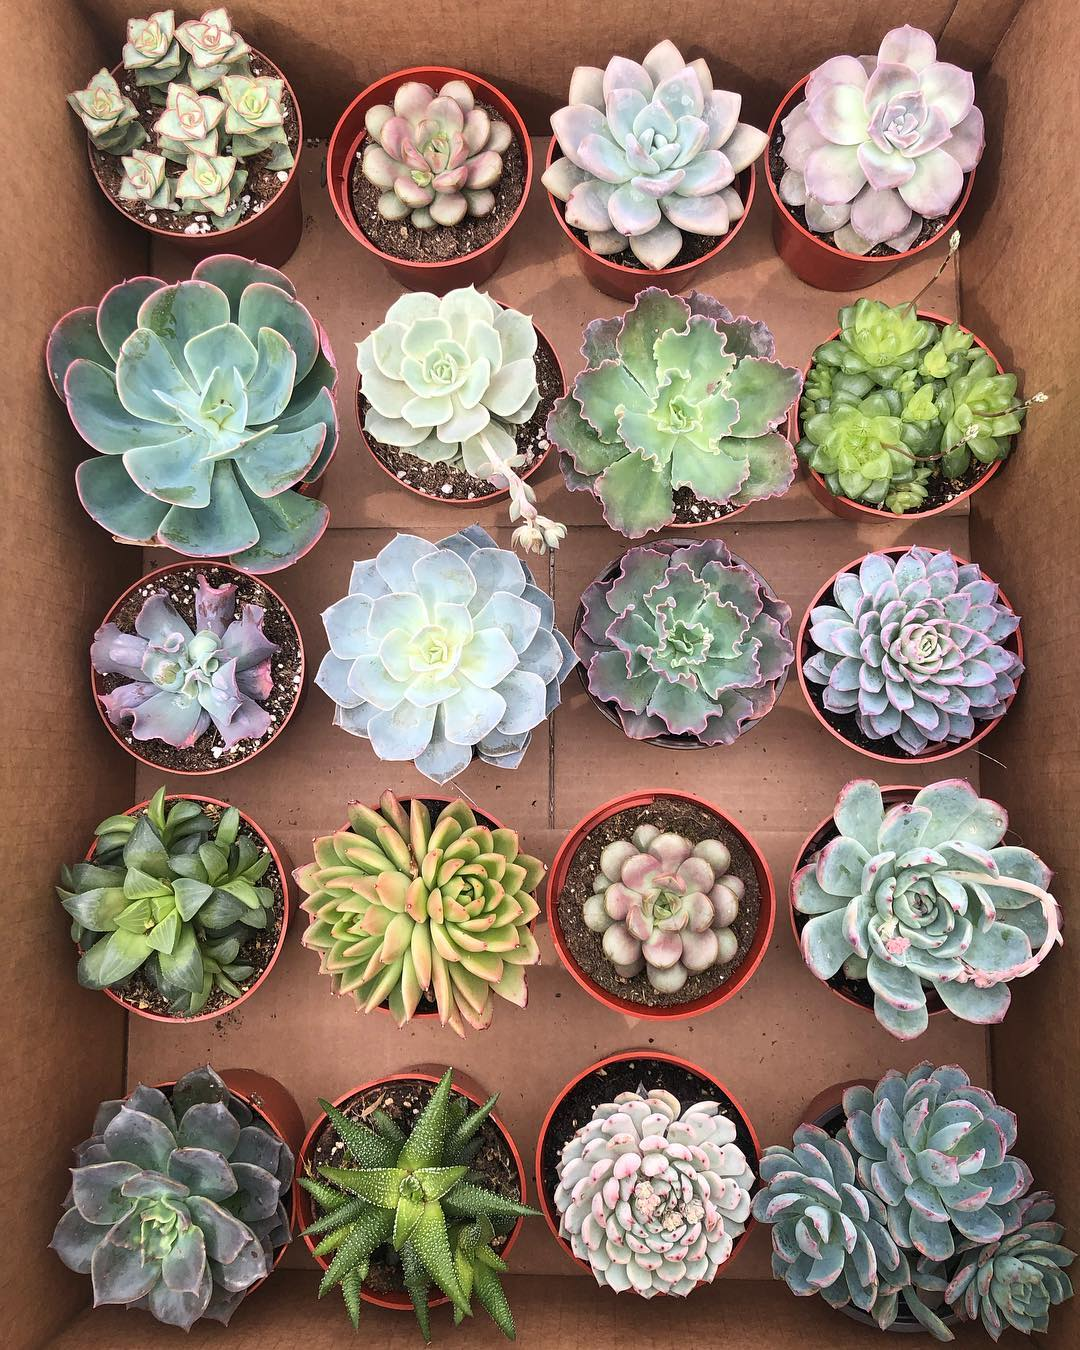 Soft vs hard succulent plants